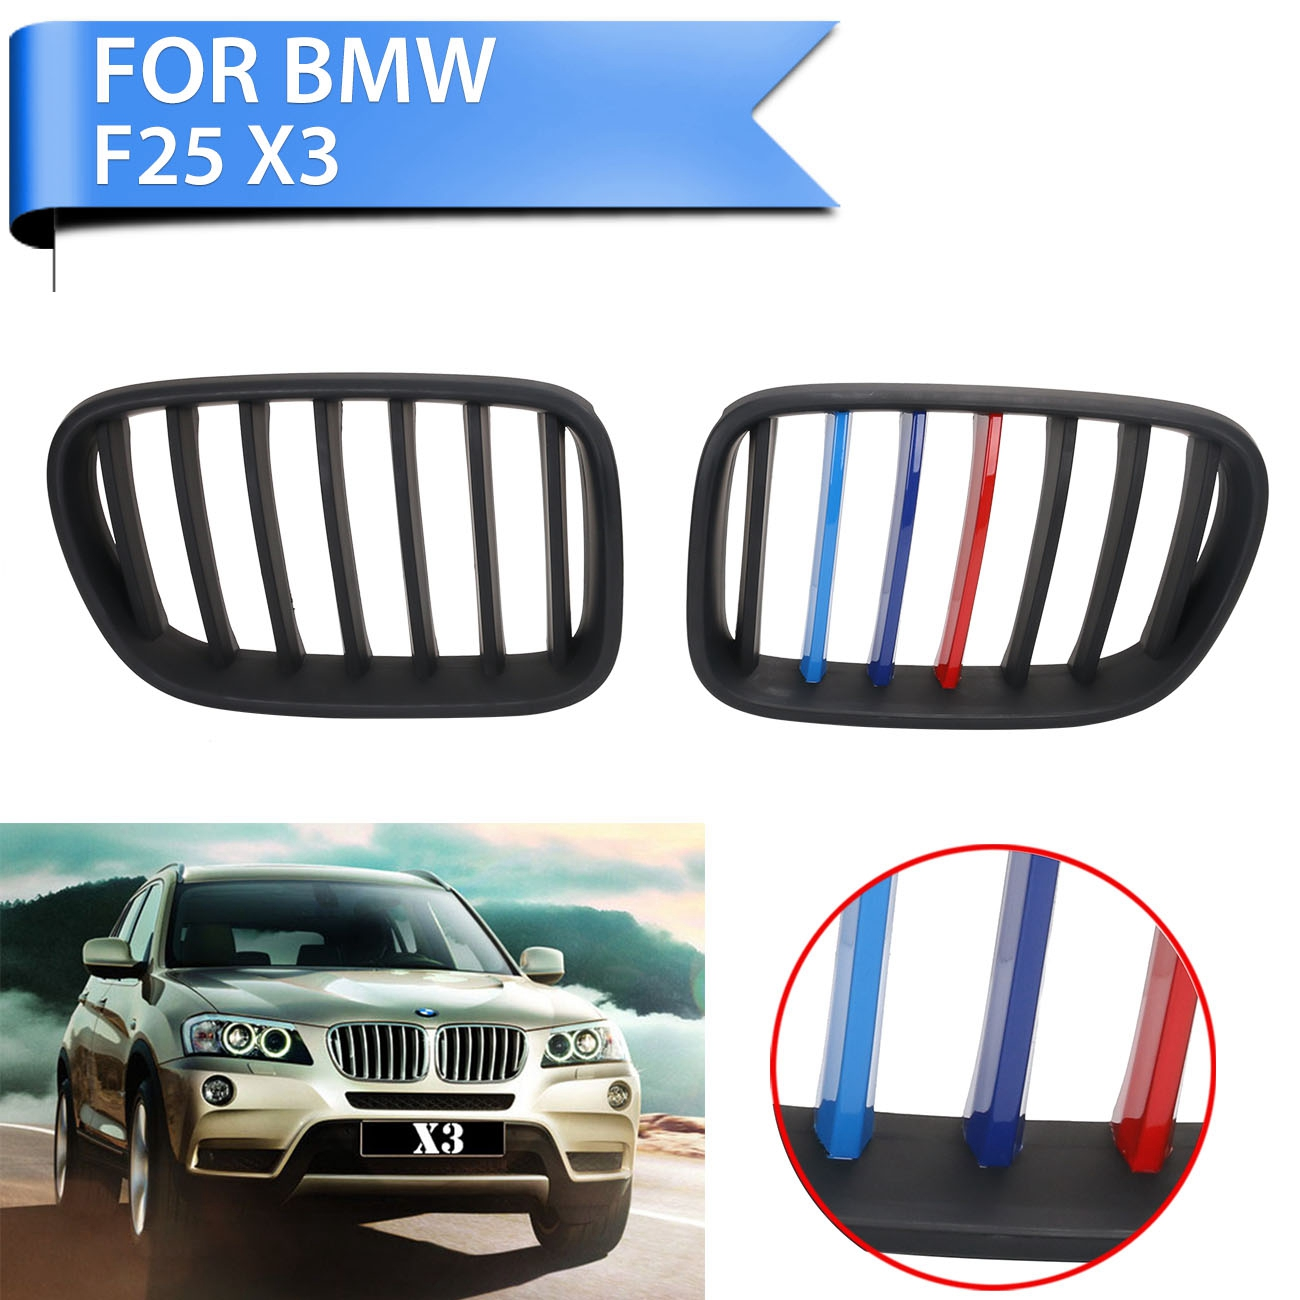 New Matte Black M-color Front Grilles Kidney Grill For BMW F25 X3 SUV xDrive 28i 35i 2011 2012 2013 Car-Styling #P345 car grills e39 gloss black m color front kidney grilles double line grills for bmw e39 m5 1997 2003 c 5